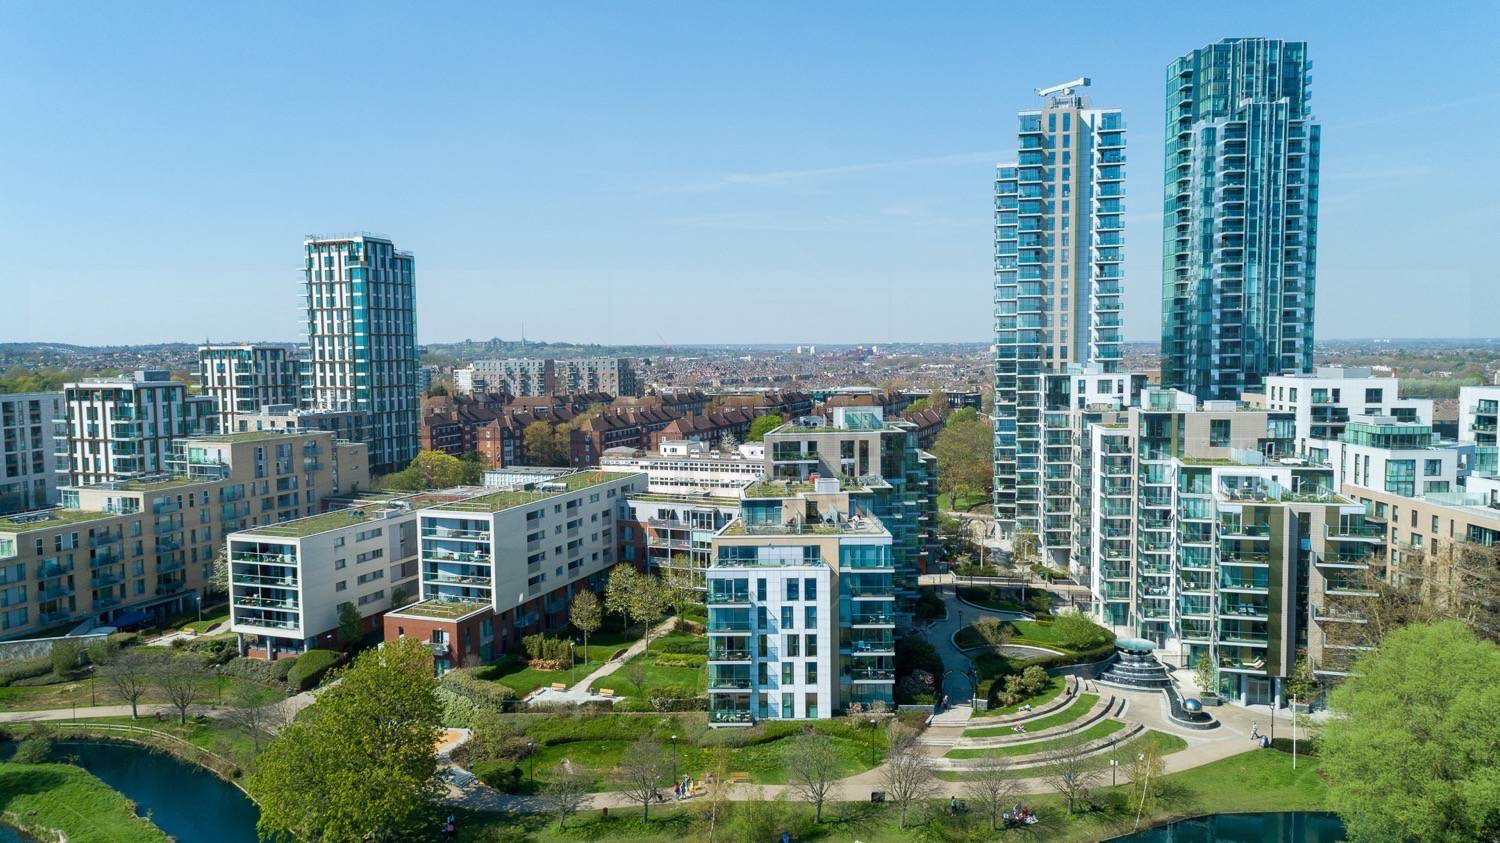 Woodberry Down Development by Drone Photographer OD Hunte ©2018 Hunte Aerial